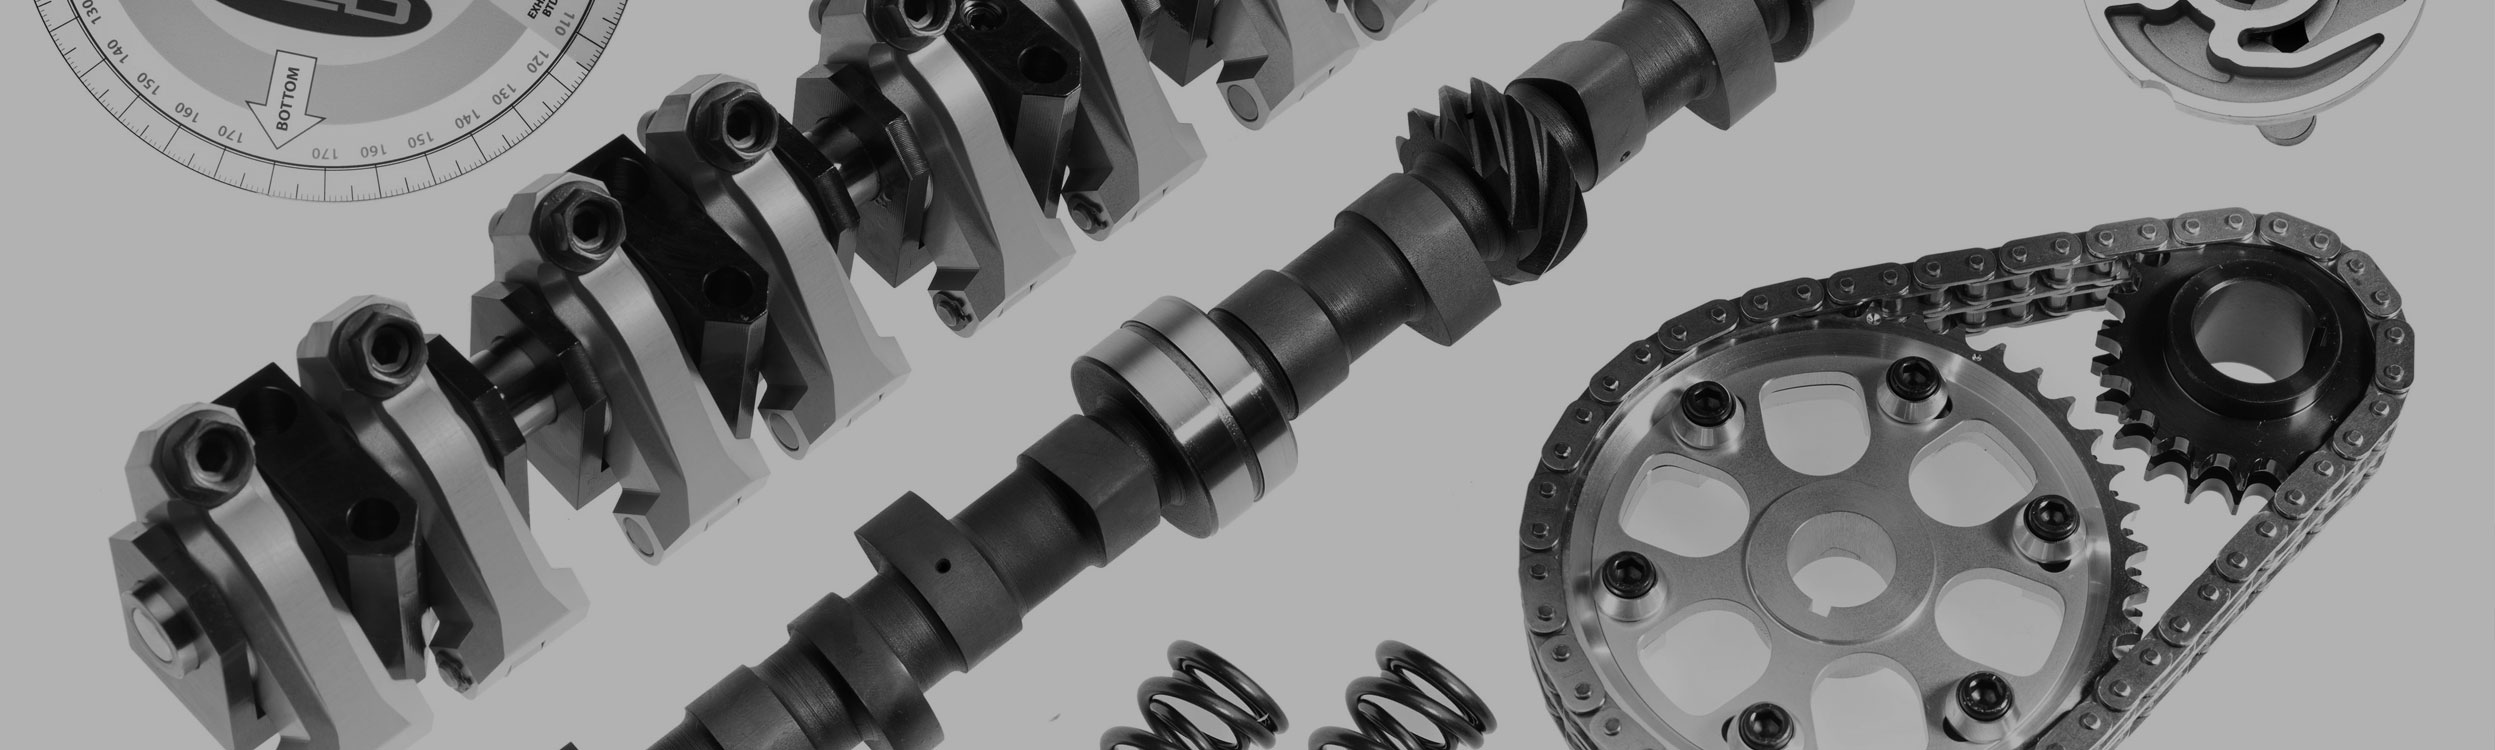 Camshafts & kits